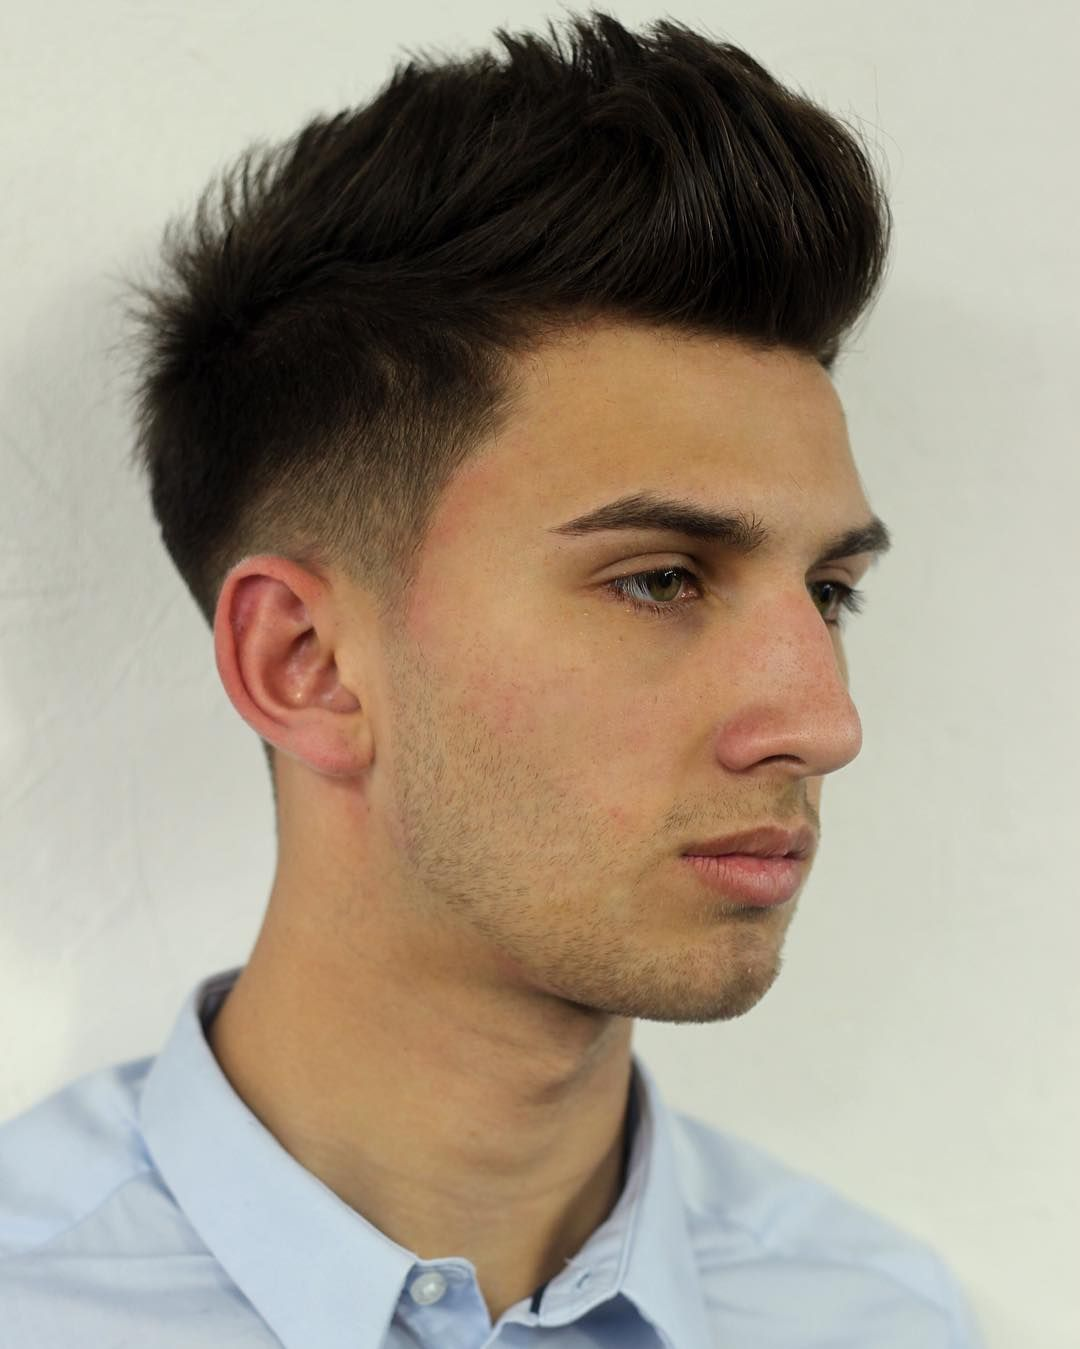 Mens faded haircut cool  stunning menus haircuts for thin hair u styles that fit your